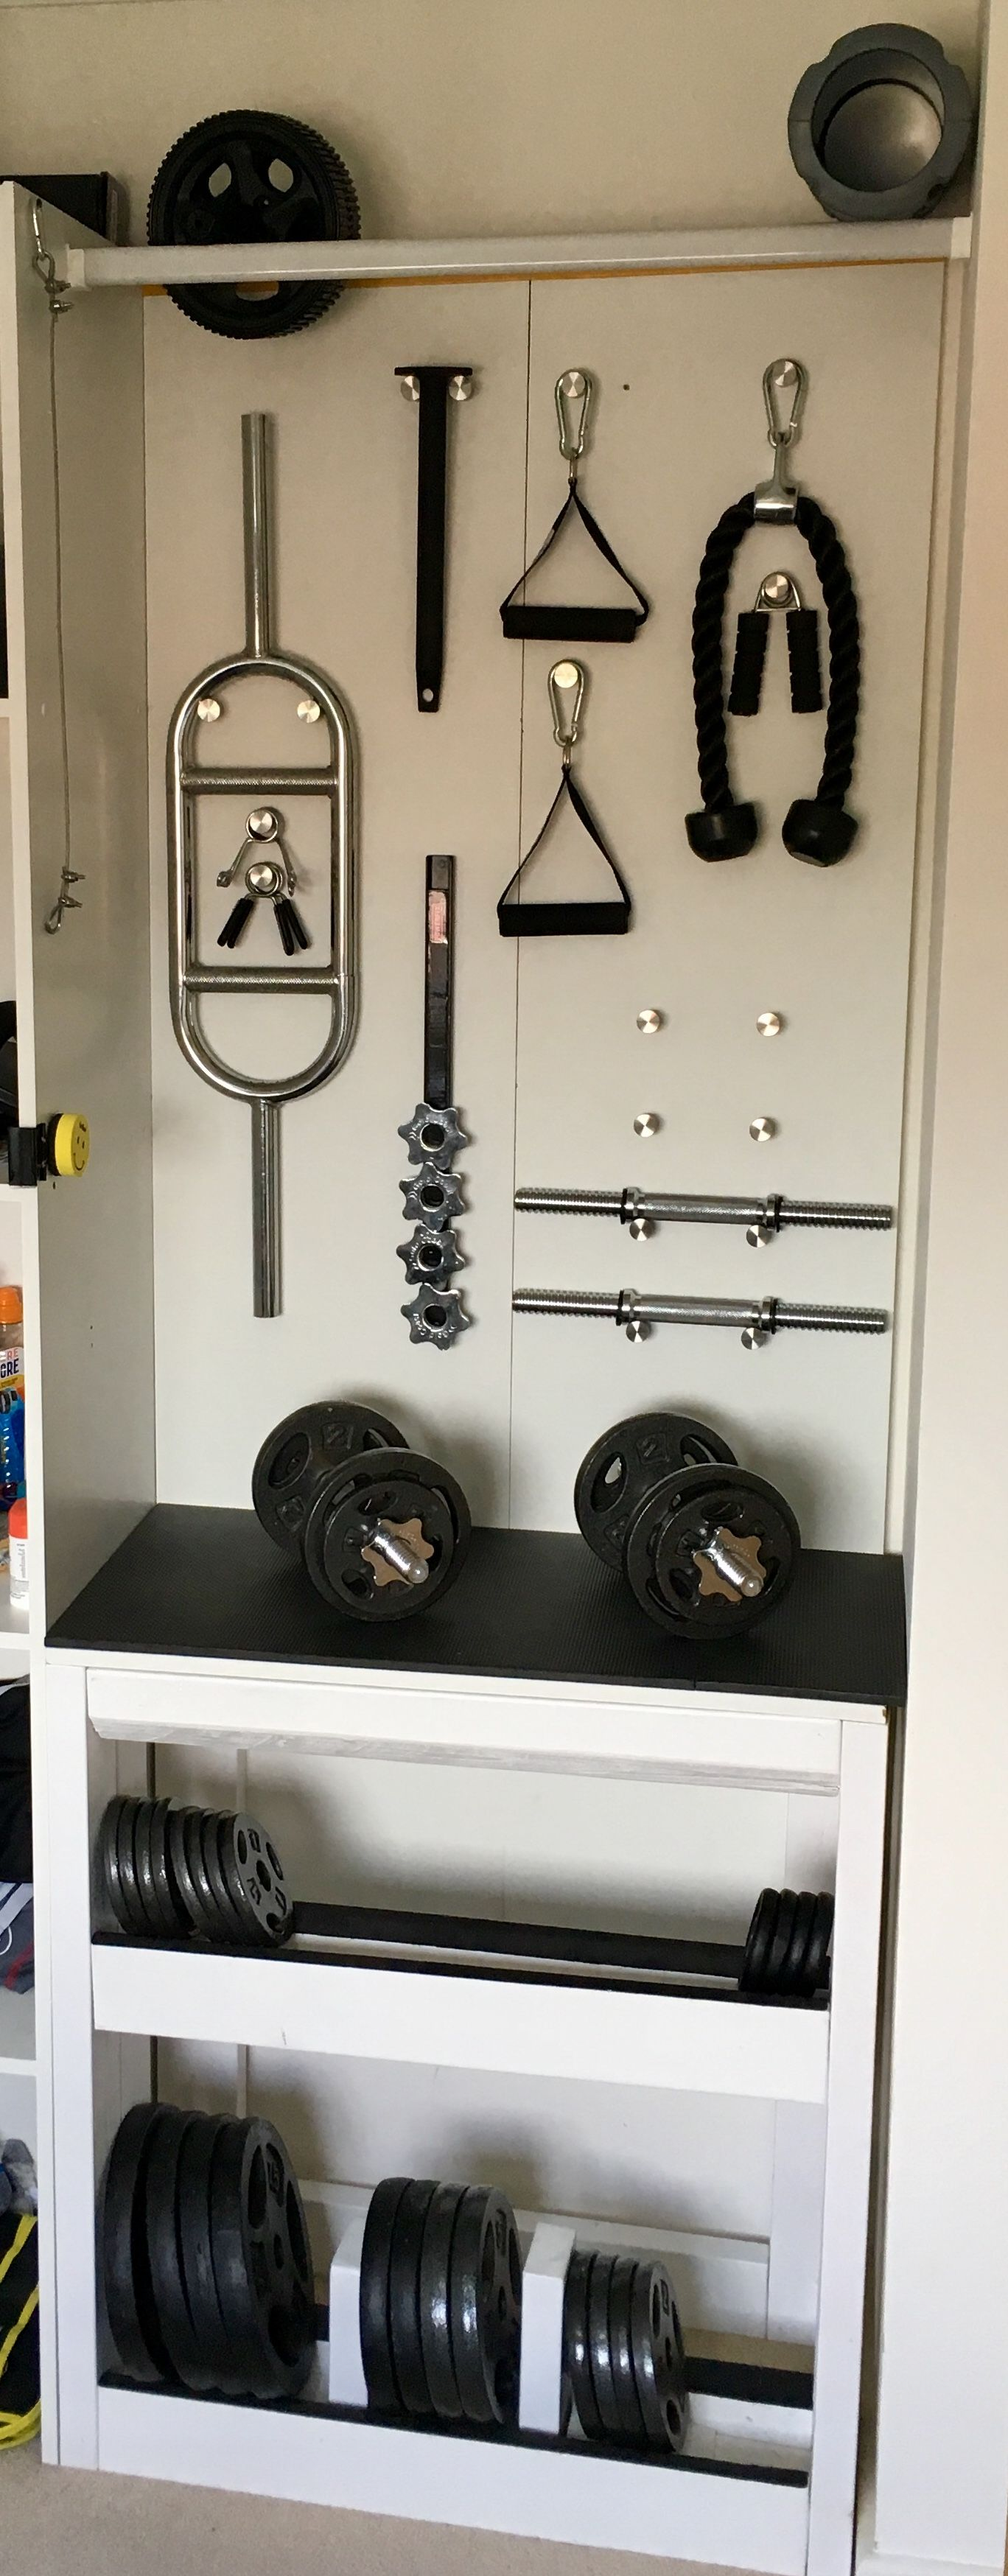 bde2b47fb73 DIY weight rack made from standard 2x4 stud wood for storing tri hold  weights in base